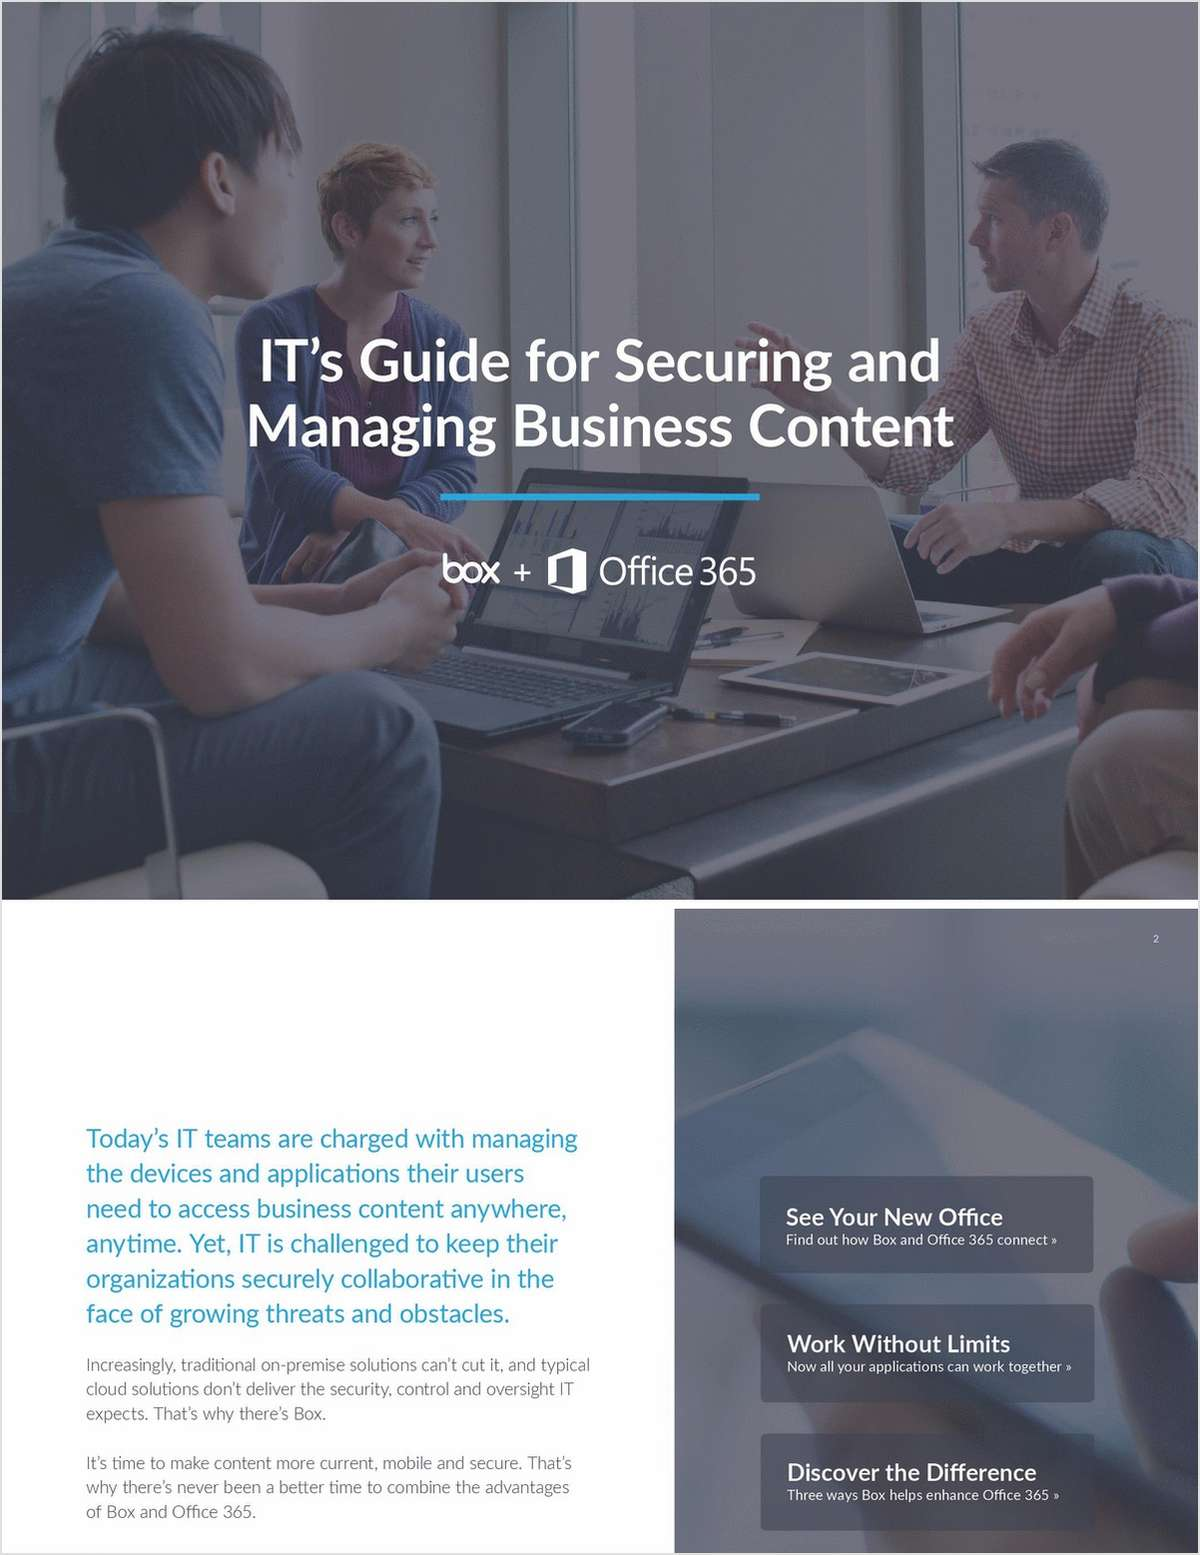 IT's Guide for Securing and Managing Business Content